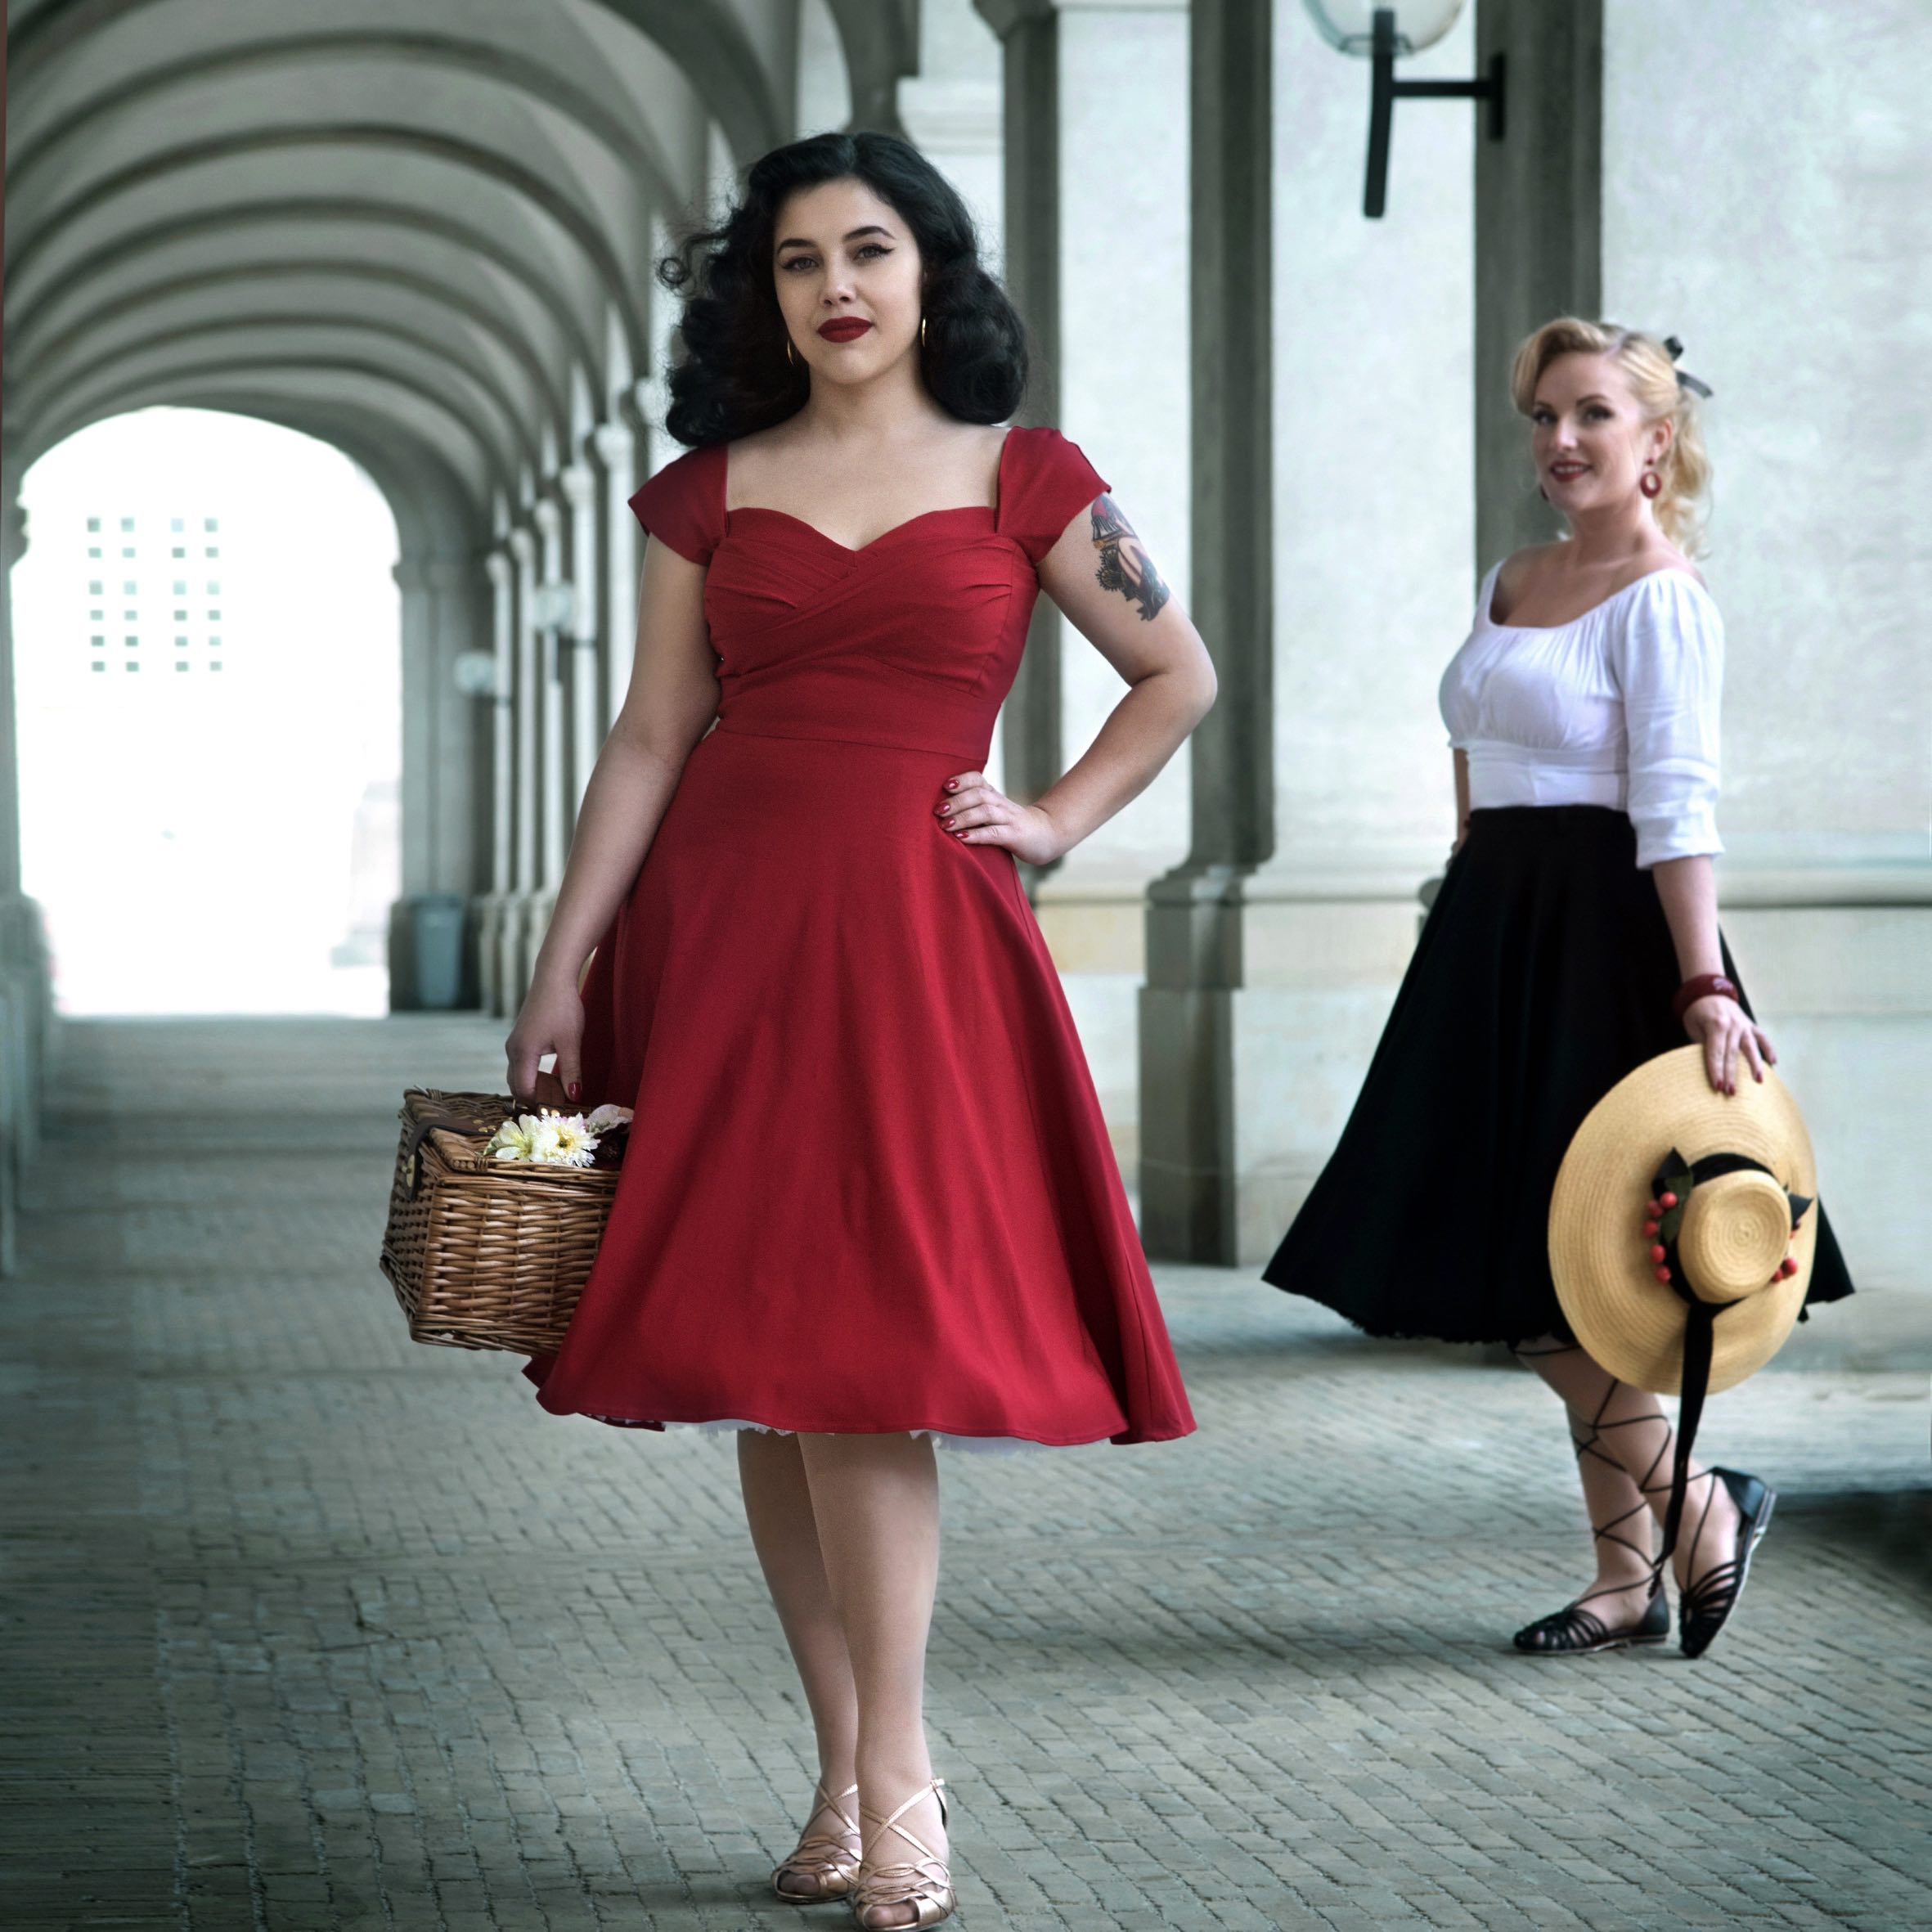 Swing dress in 50s style from Stop Staring